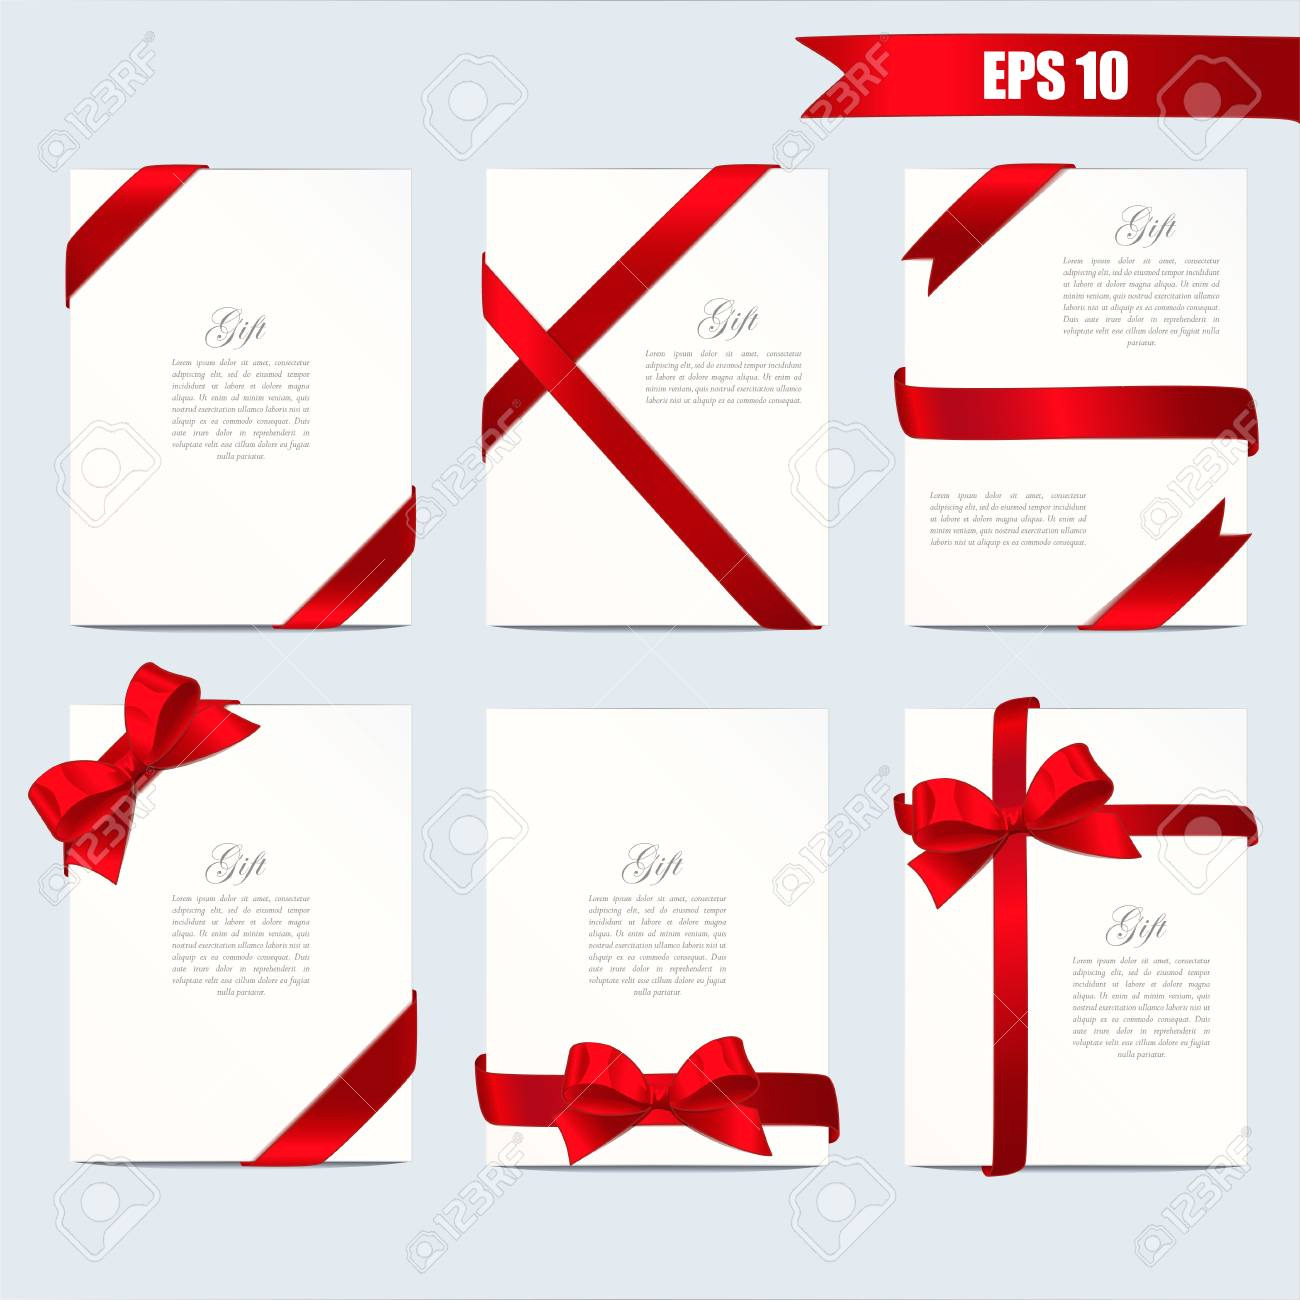 gift card template vector at getdrawings com free for personal use